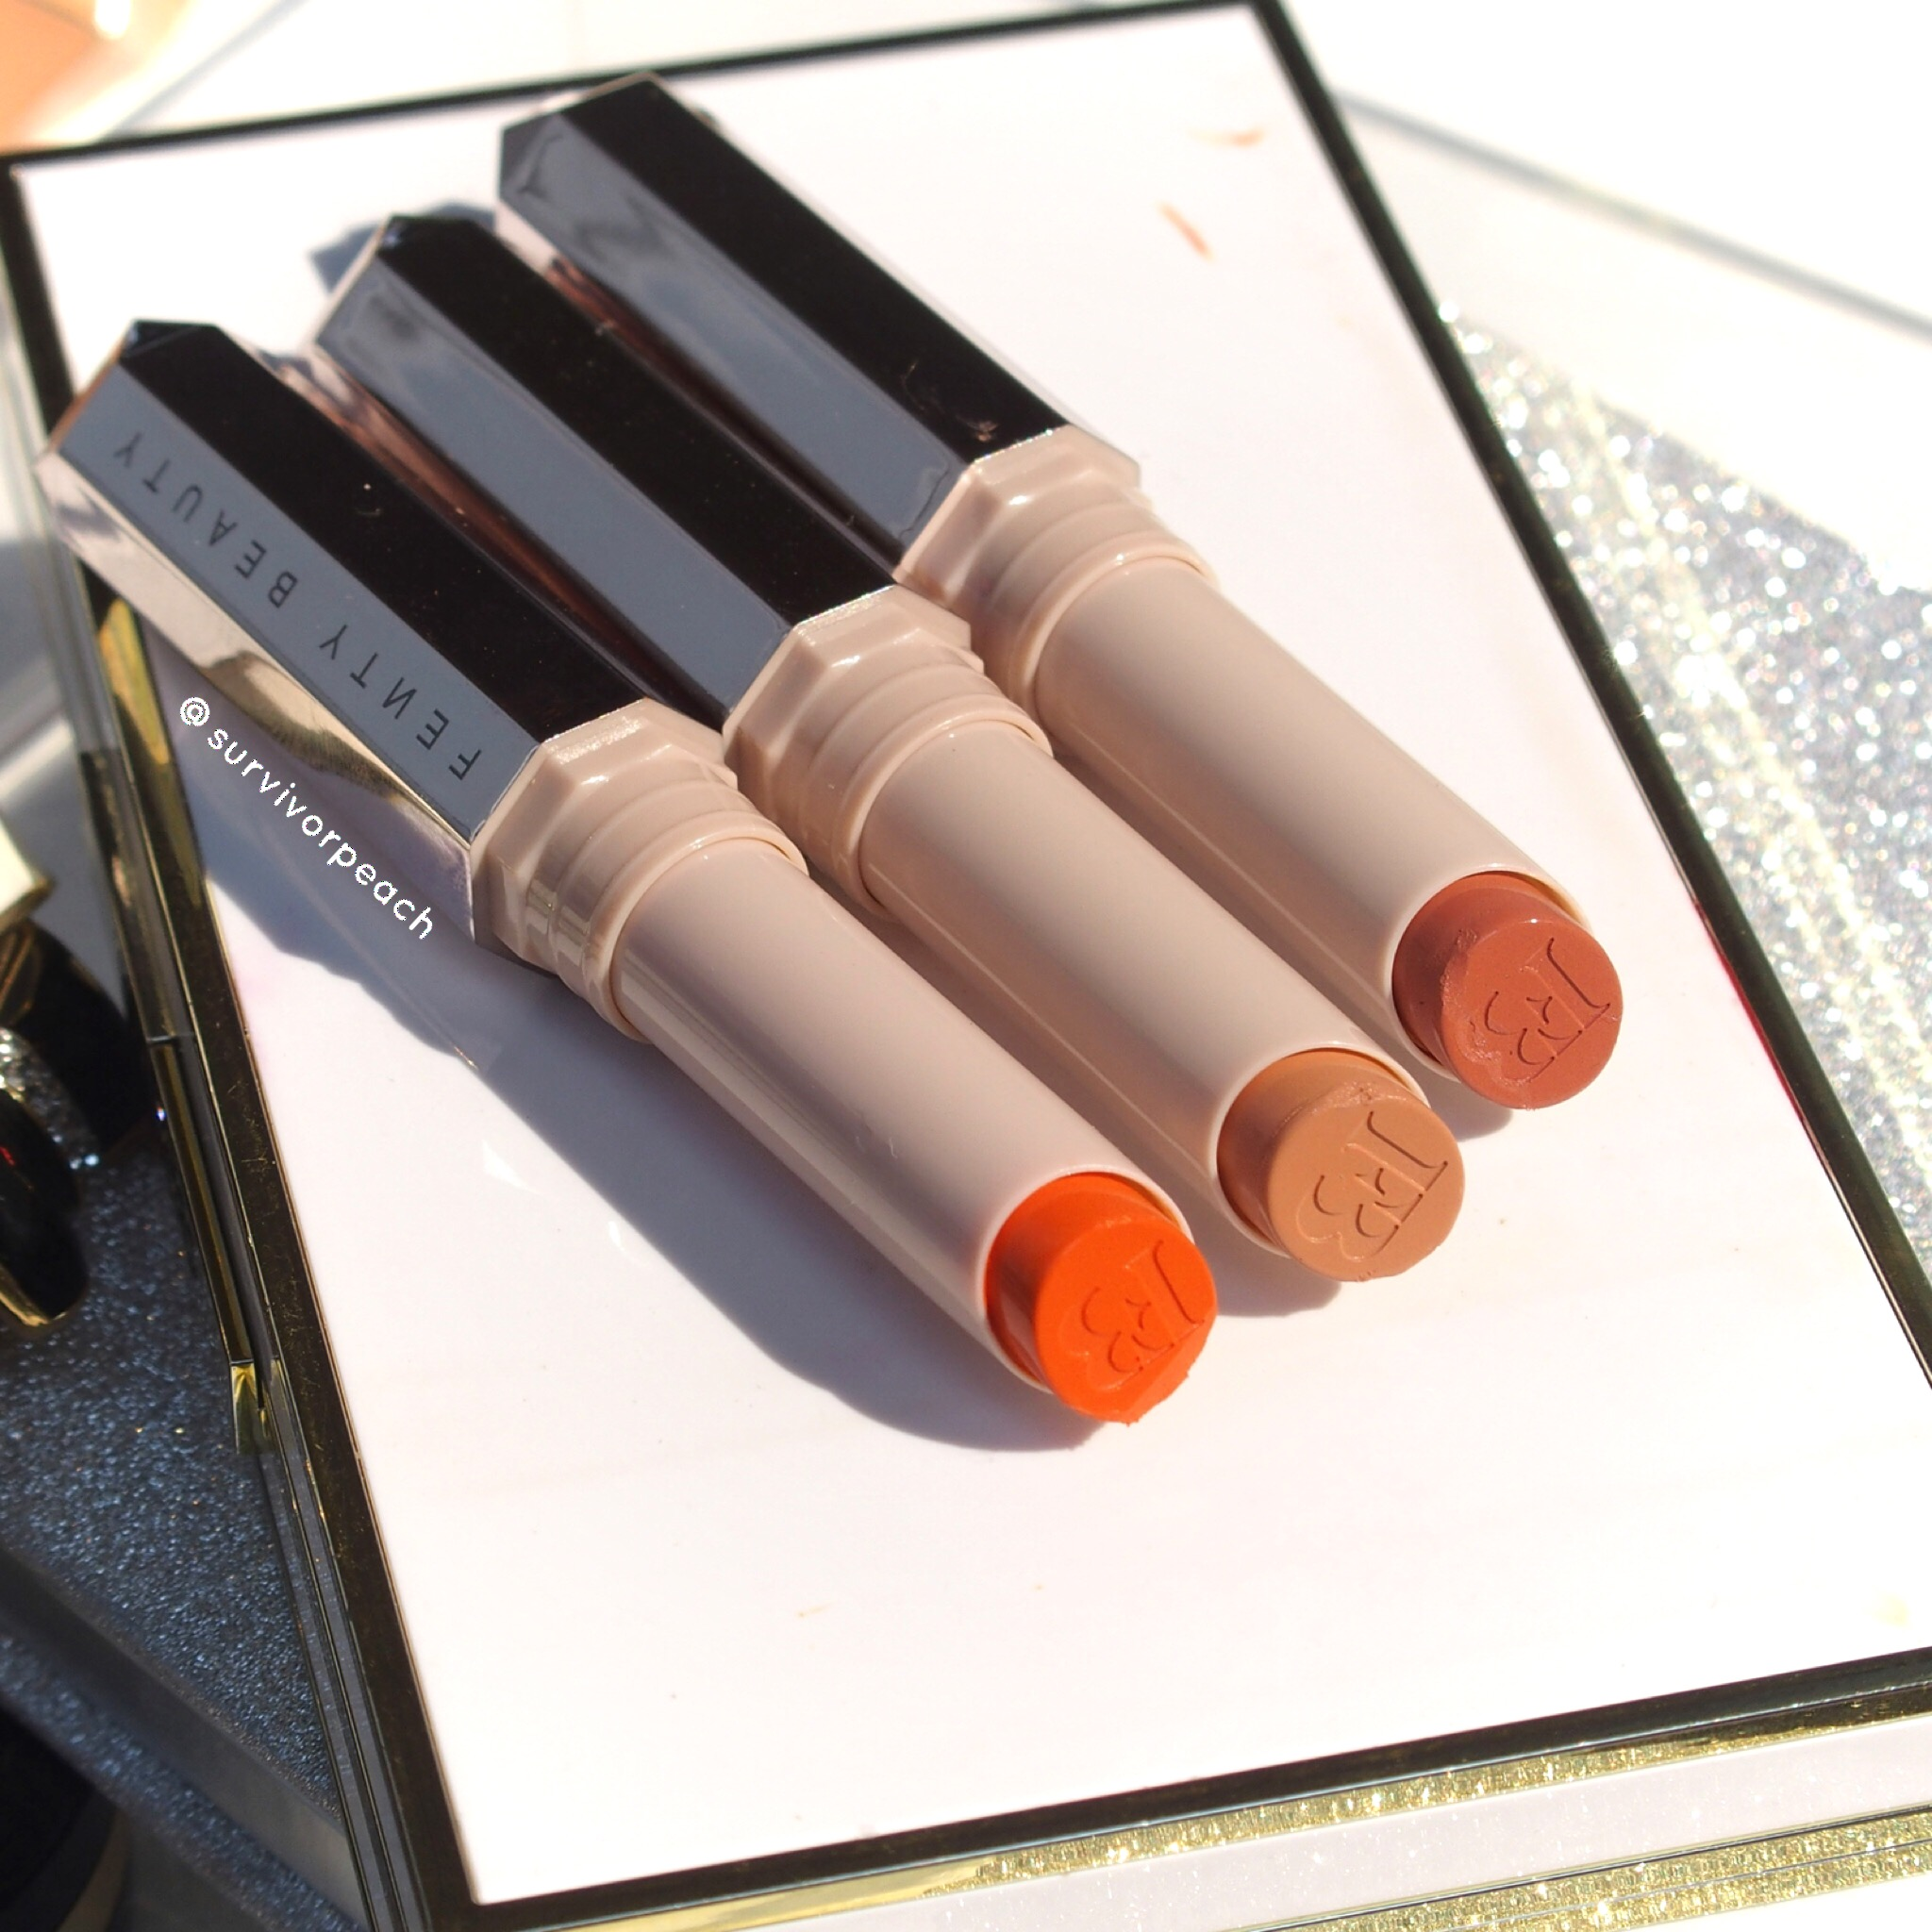 Fenty Beauty Mattemoiselle Lipsticks shade Saw C, Up To No Good, S1ngle